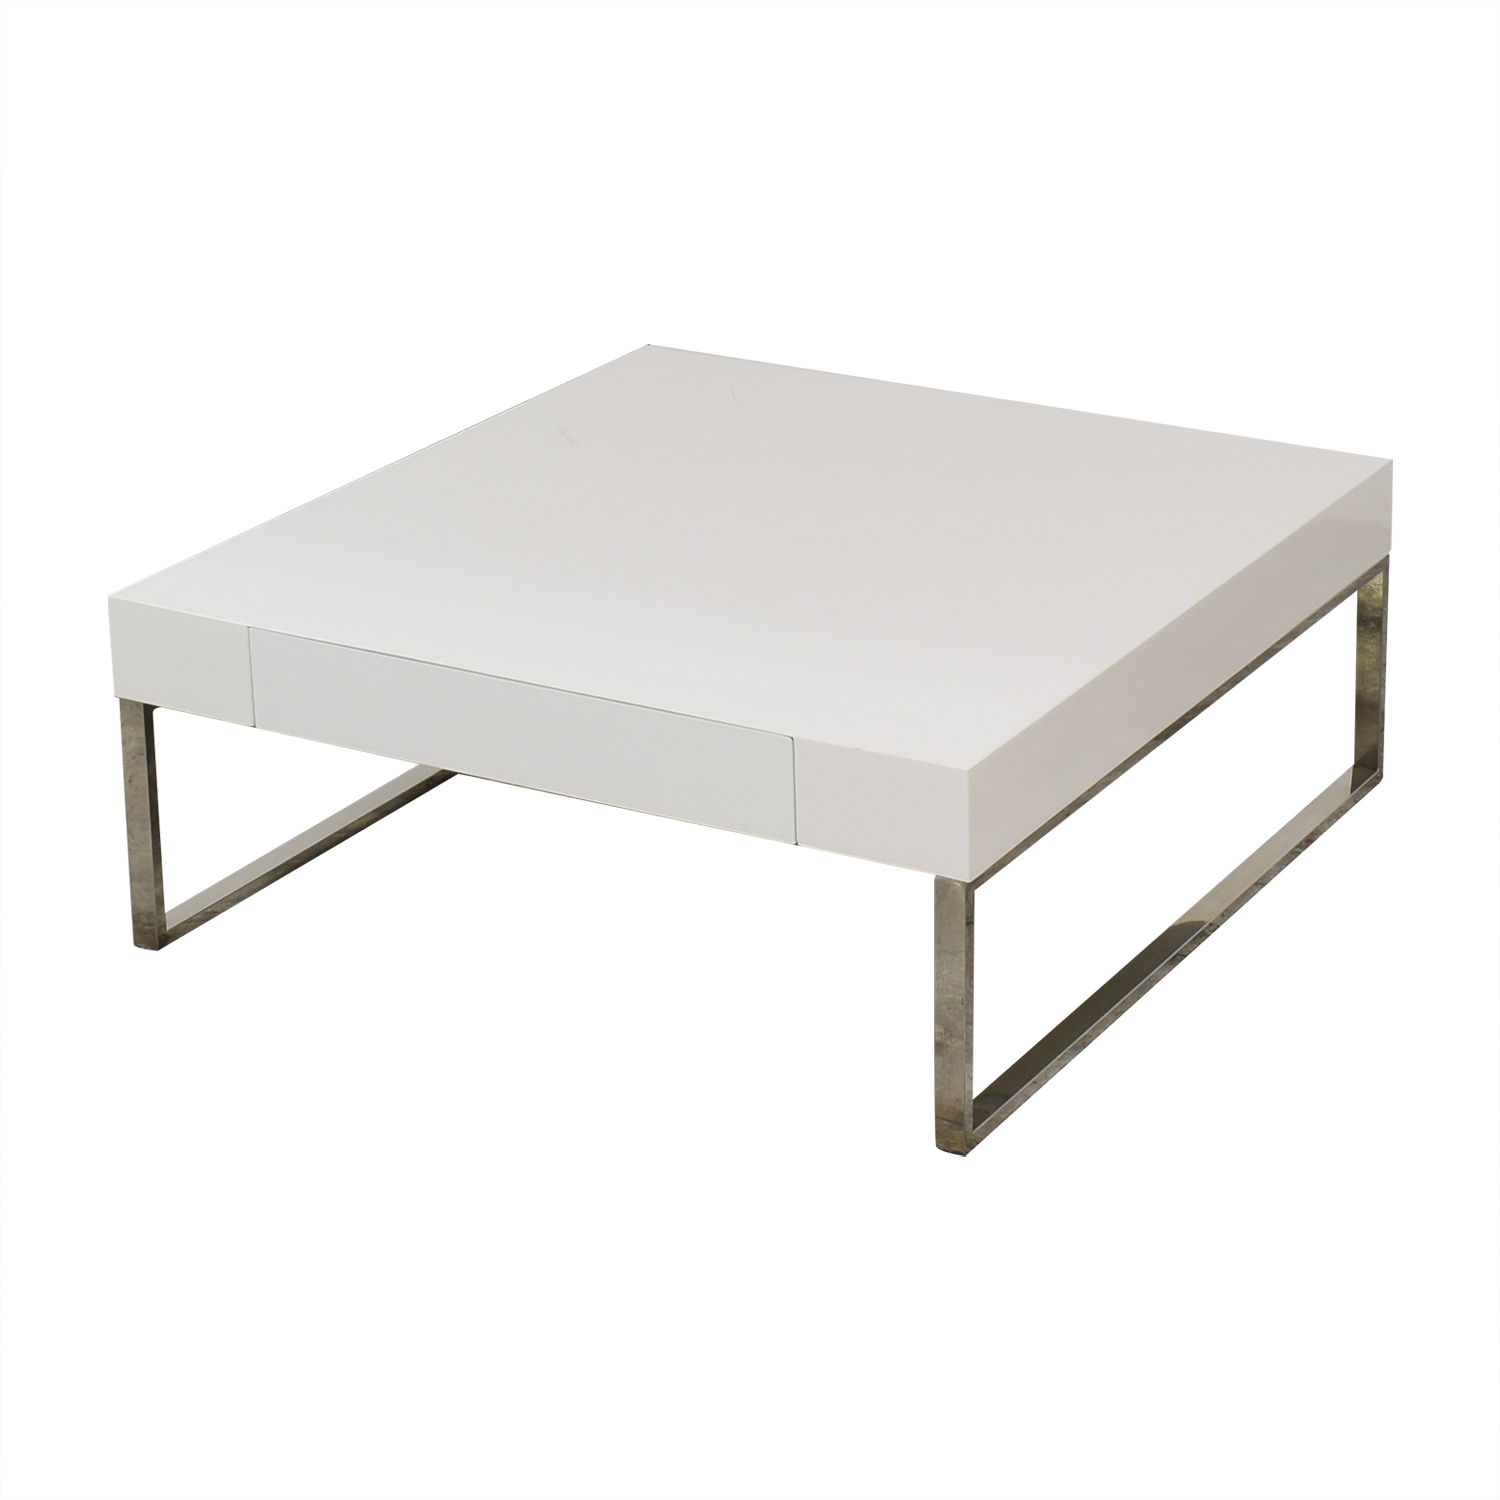 Modani Modani Gavino Coffee Table